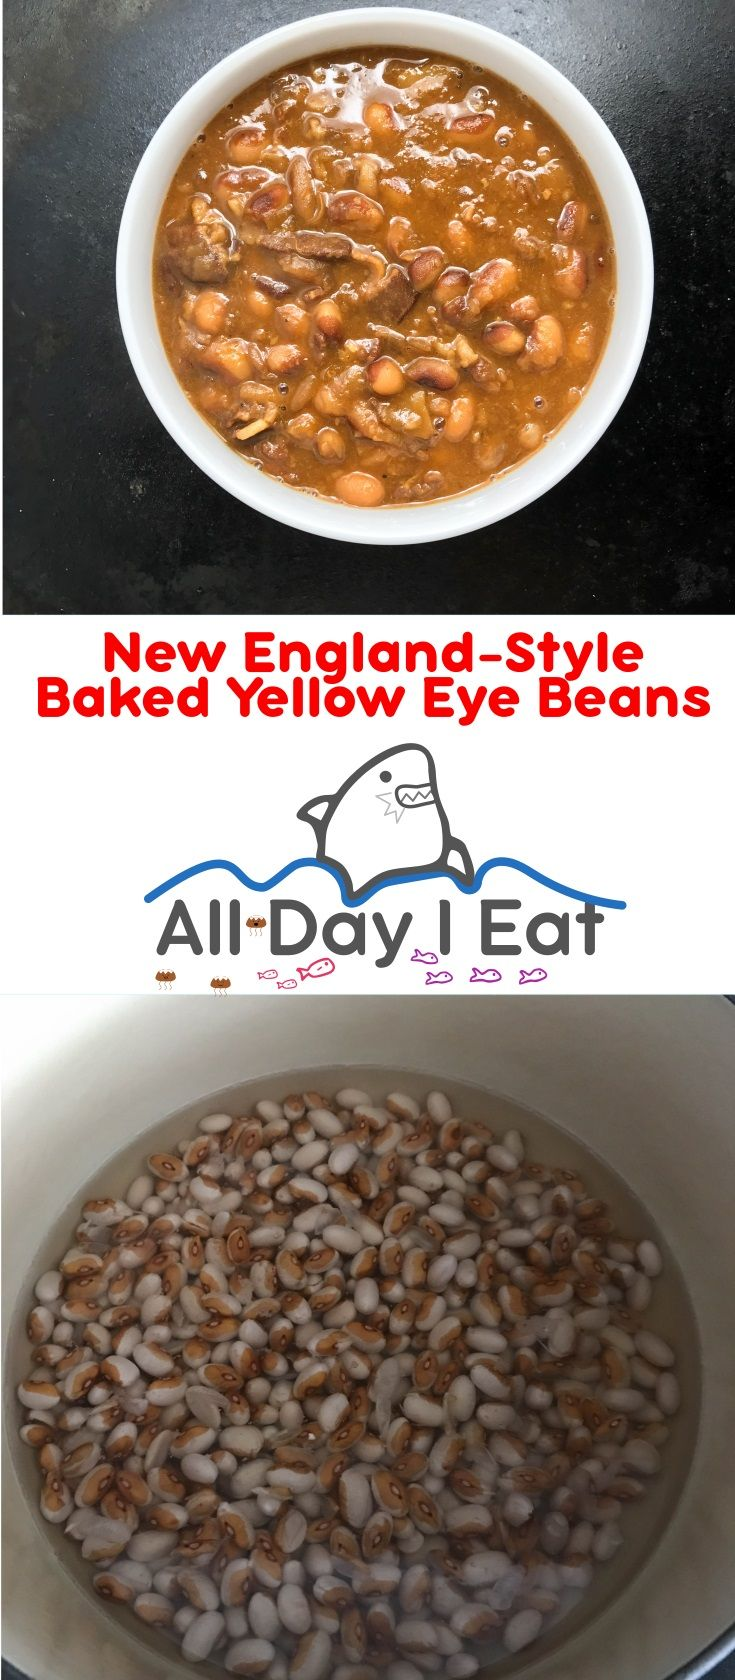 New England-Style Baked Yellow Eye Beans! These heirloom beans are warm, hearty and savory. A comforting preparation that is complex and not too sweet! | www.alldayieat.com